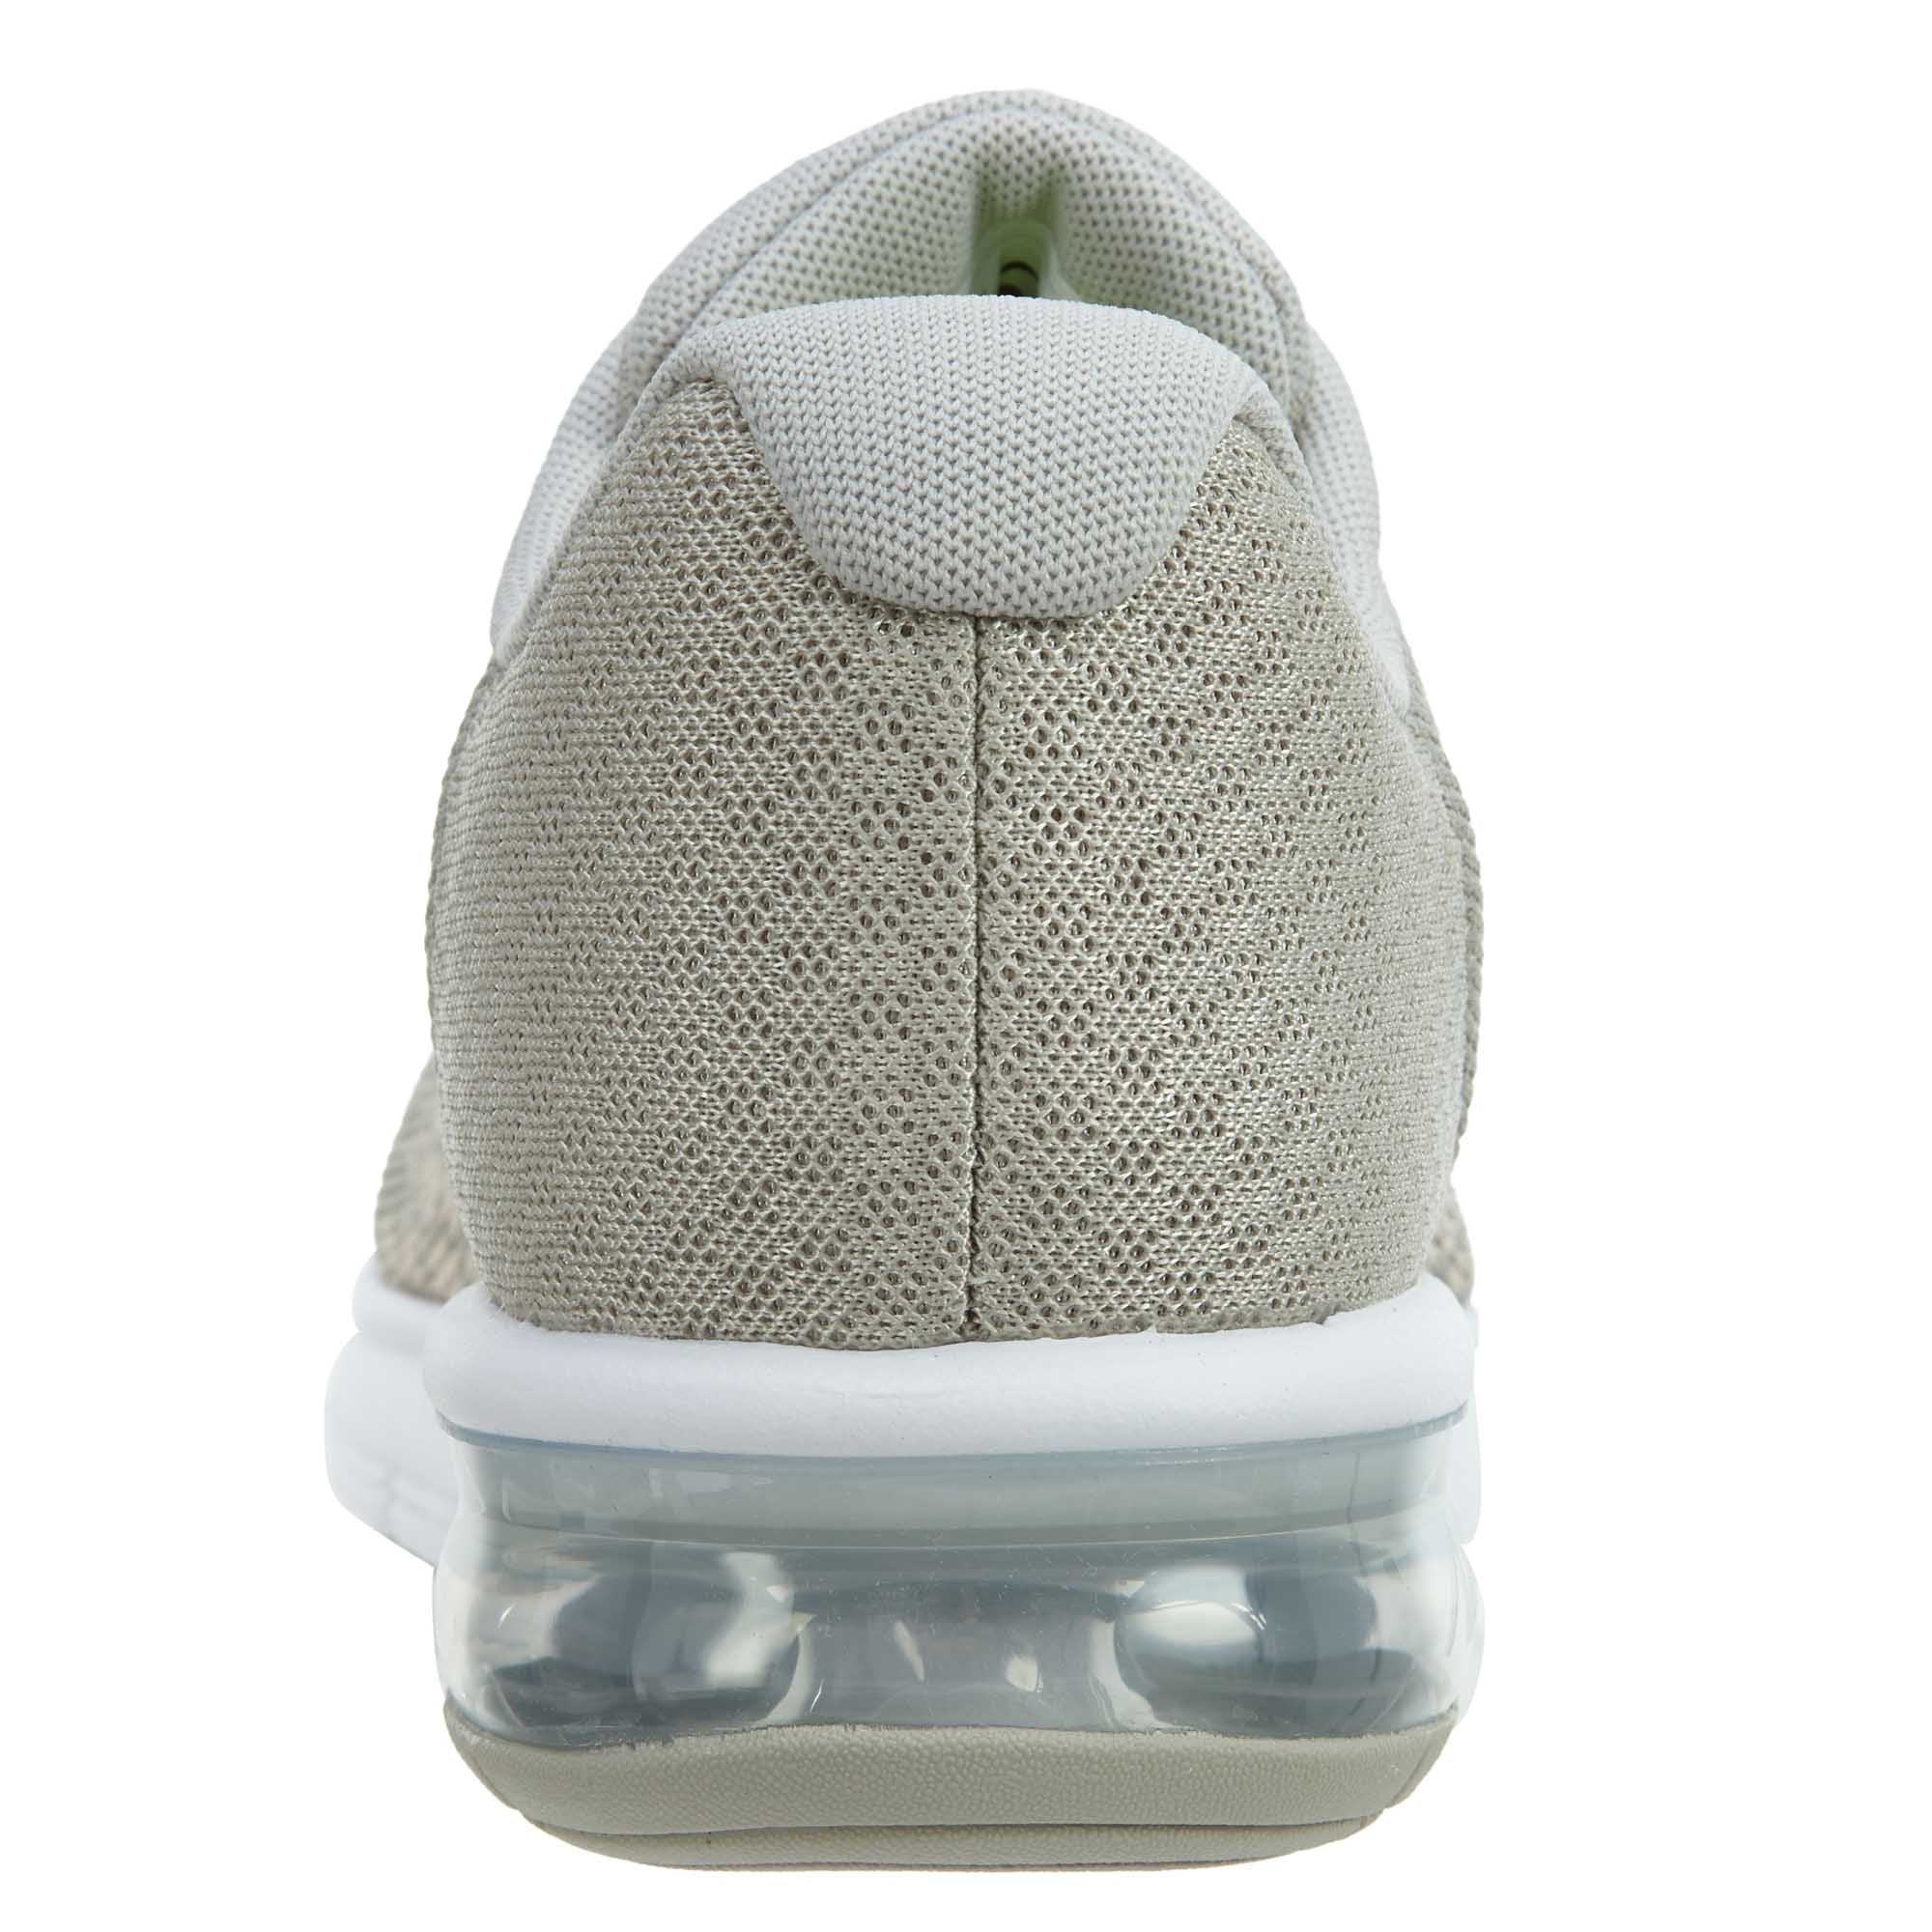 e53199c98 ... Load image into Gallery viewer, Nike Air Max Sequent 2 Womens Style :  852465 ...